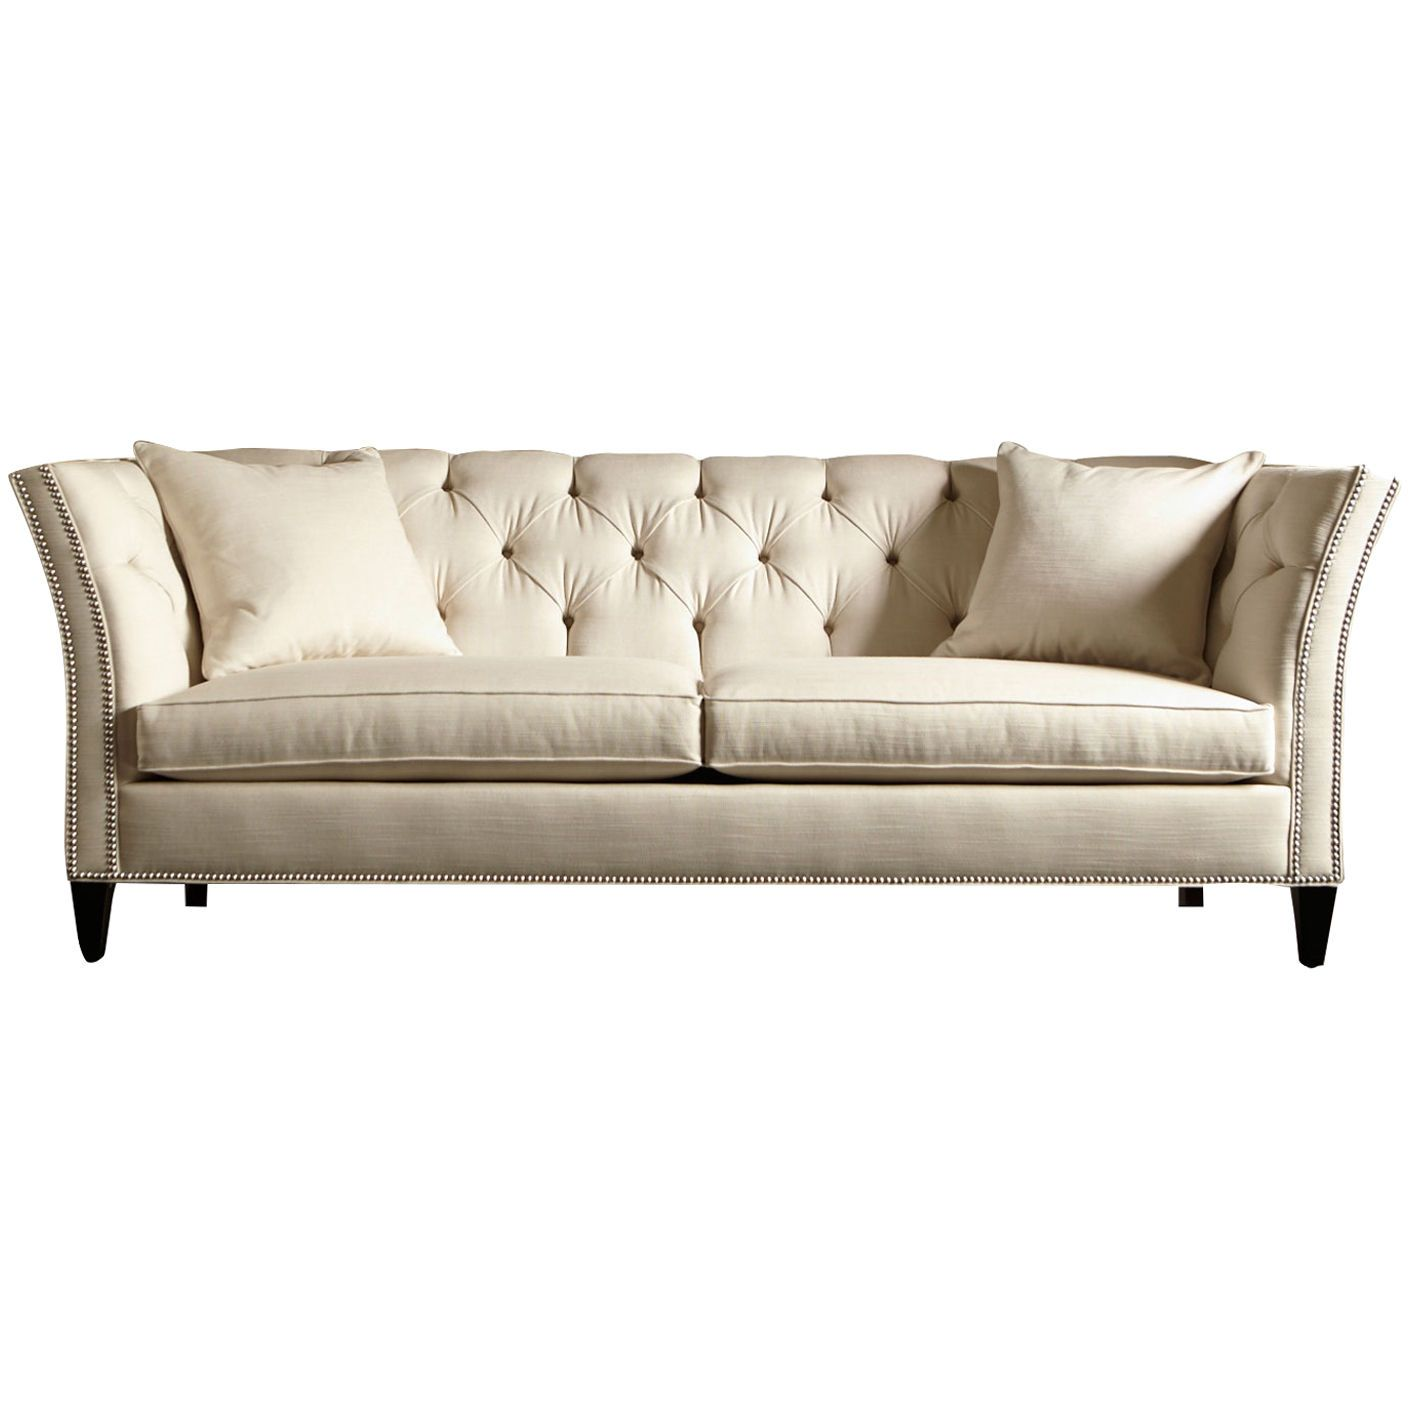 This Shelton Sofa shown in Springer White from Ethan Allen is